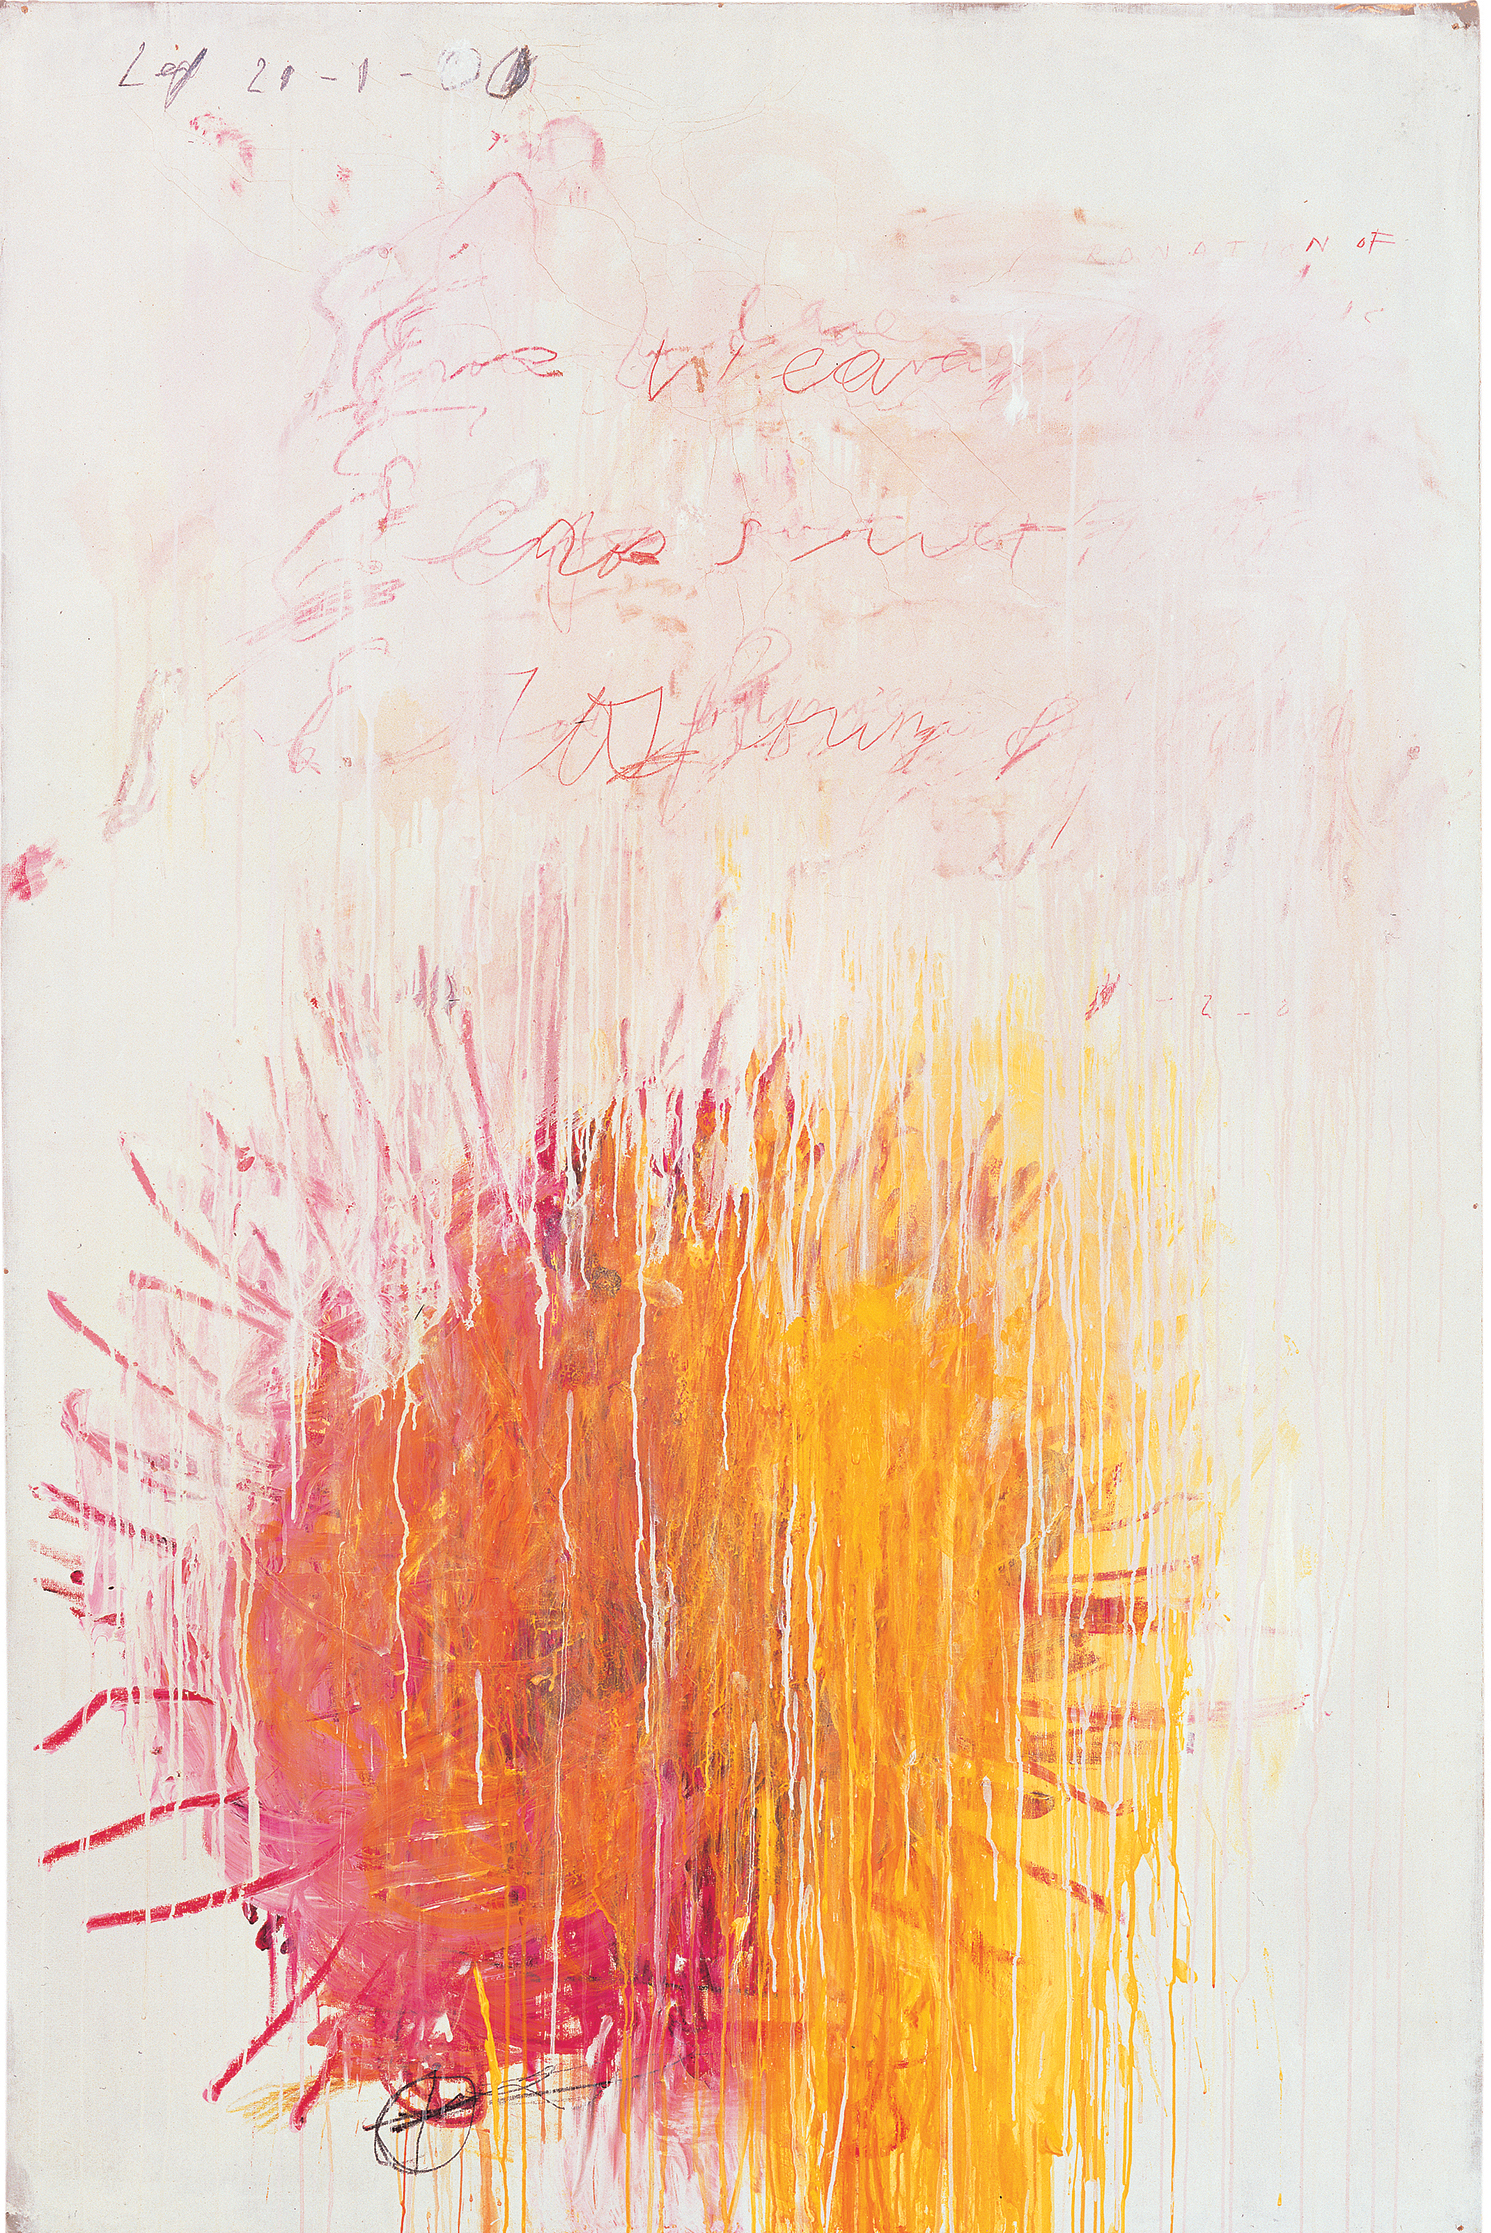 Coronation of Sesostris, Part III (2000), by Cy Twombly. Acrylic, wax crayon and pencil on canvas, 206.1 x 136.5 cm. Pinault Collection. © Pinault Collection / Photo: Robert McKeever.